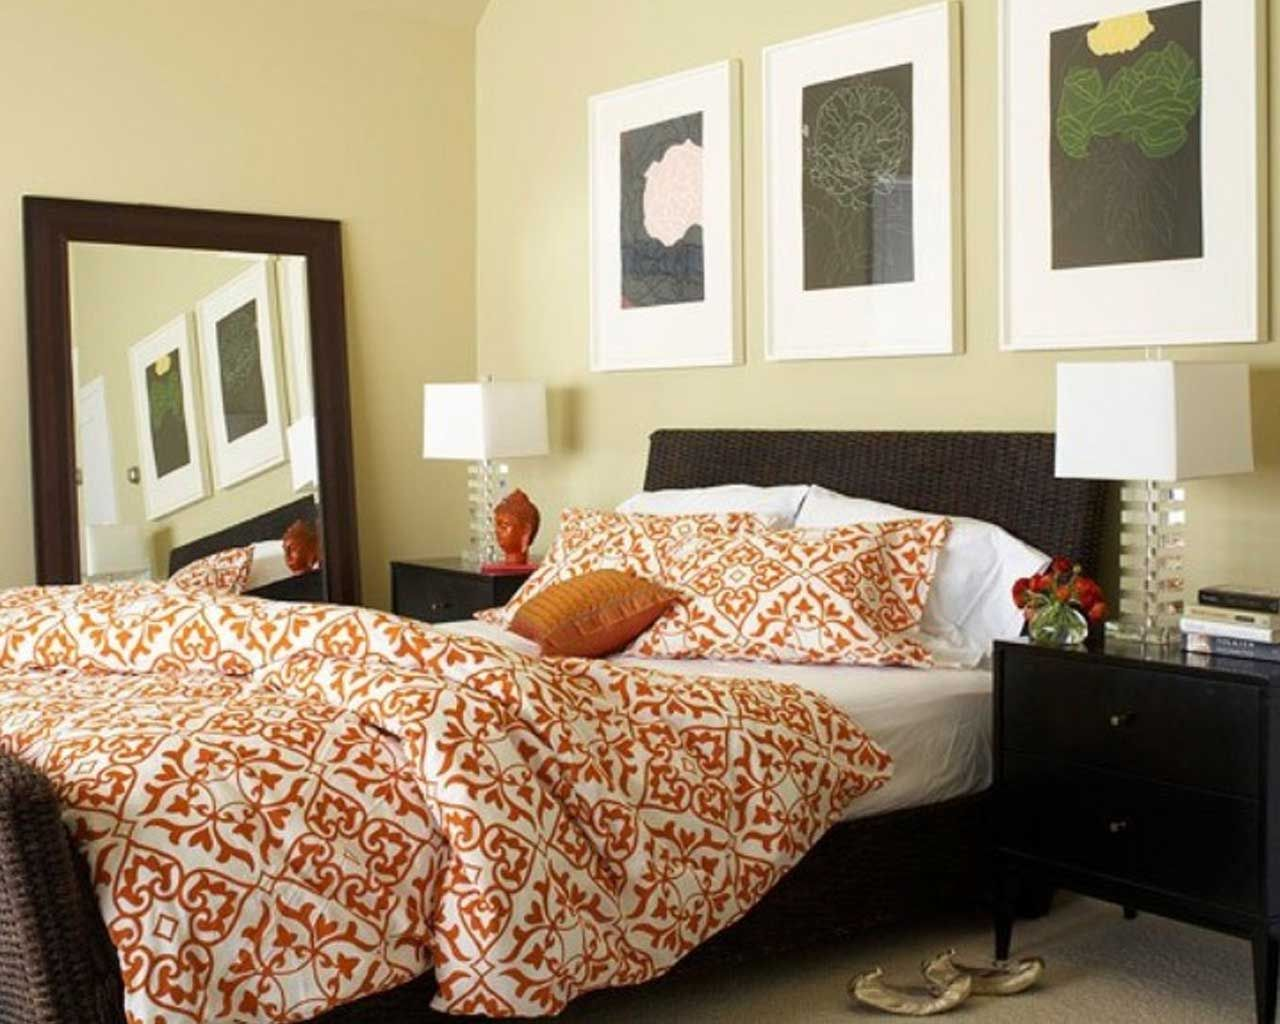 cozy bedroom decorating ideas. Cool 31 Cozy And Inspiring Bedroom Decorating Ideas In Fall Colors : With White Wall A